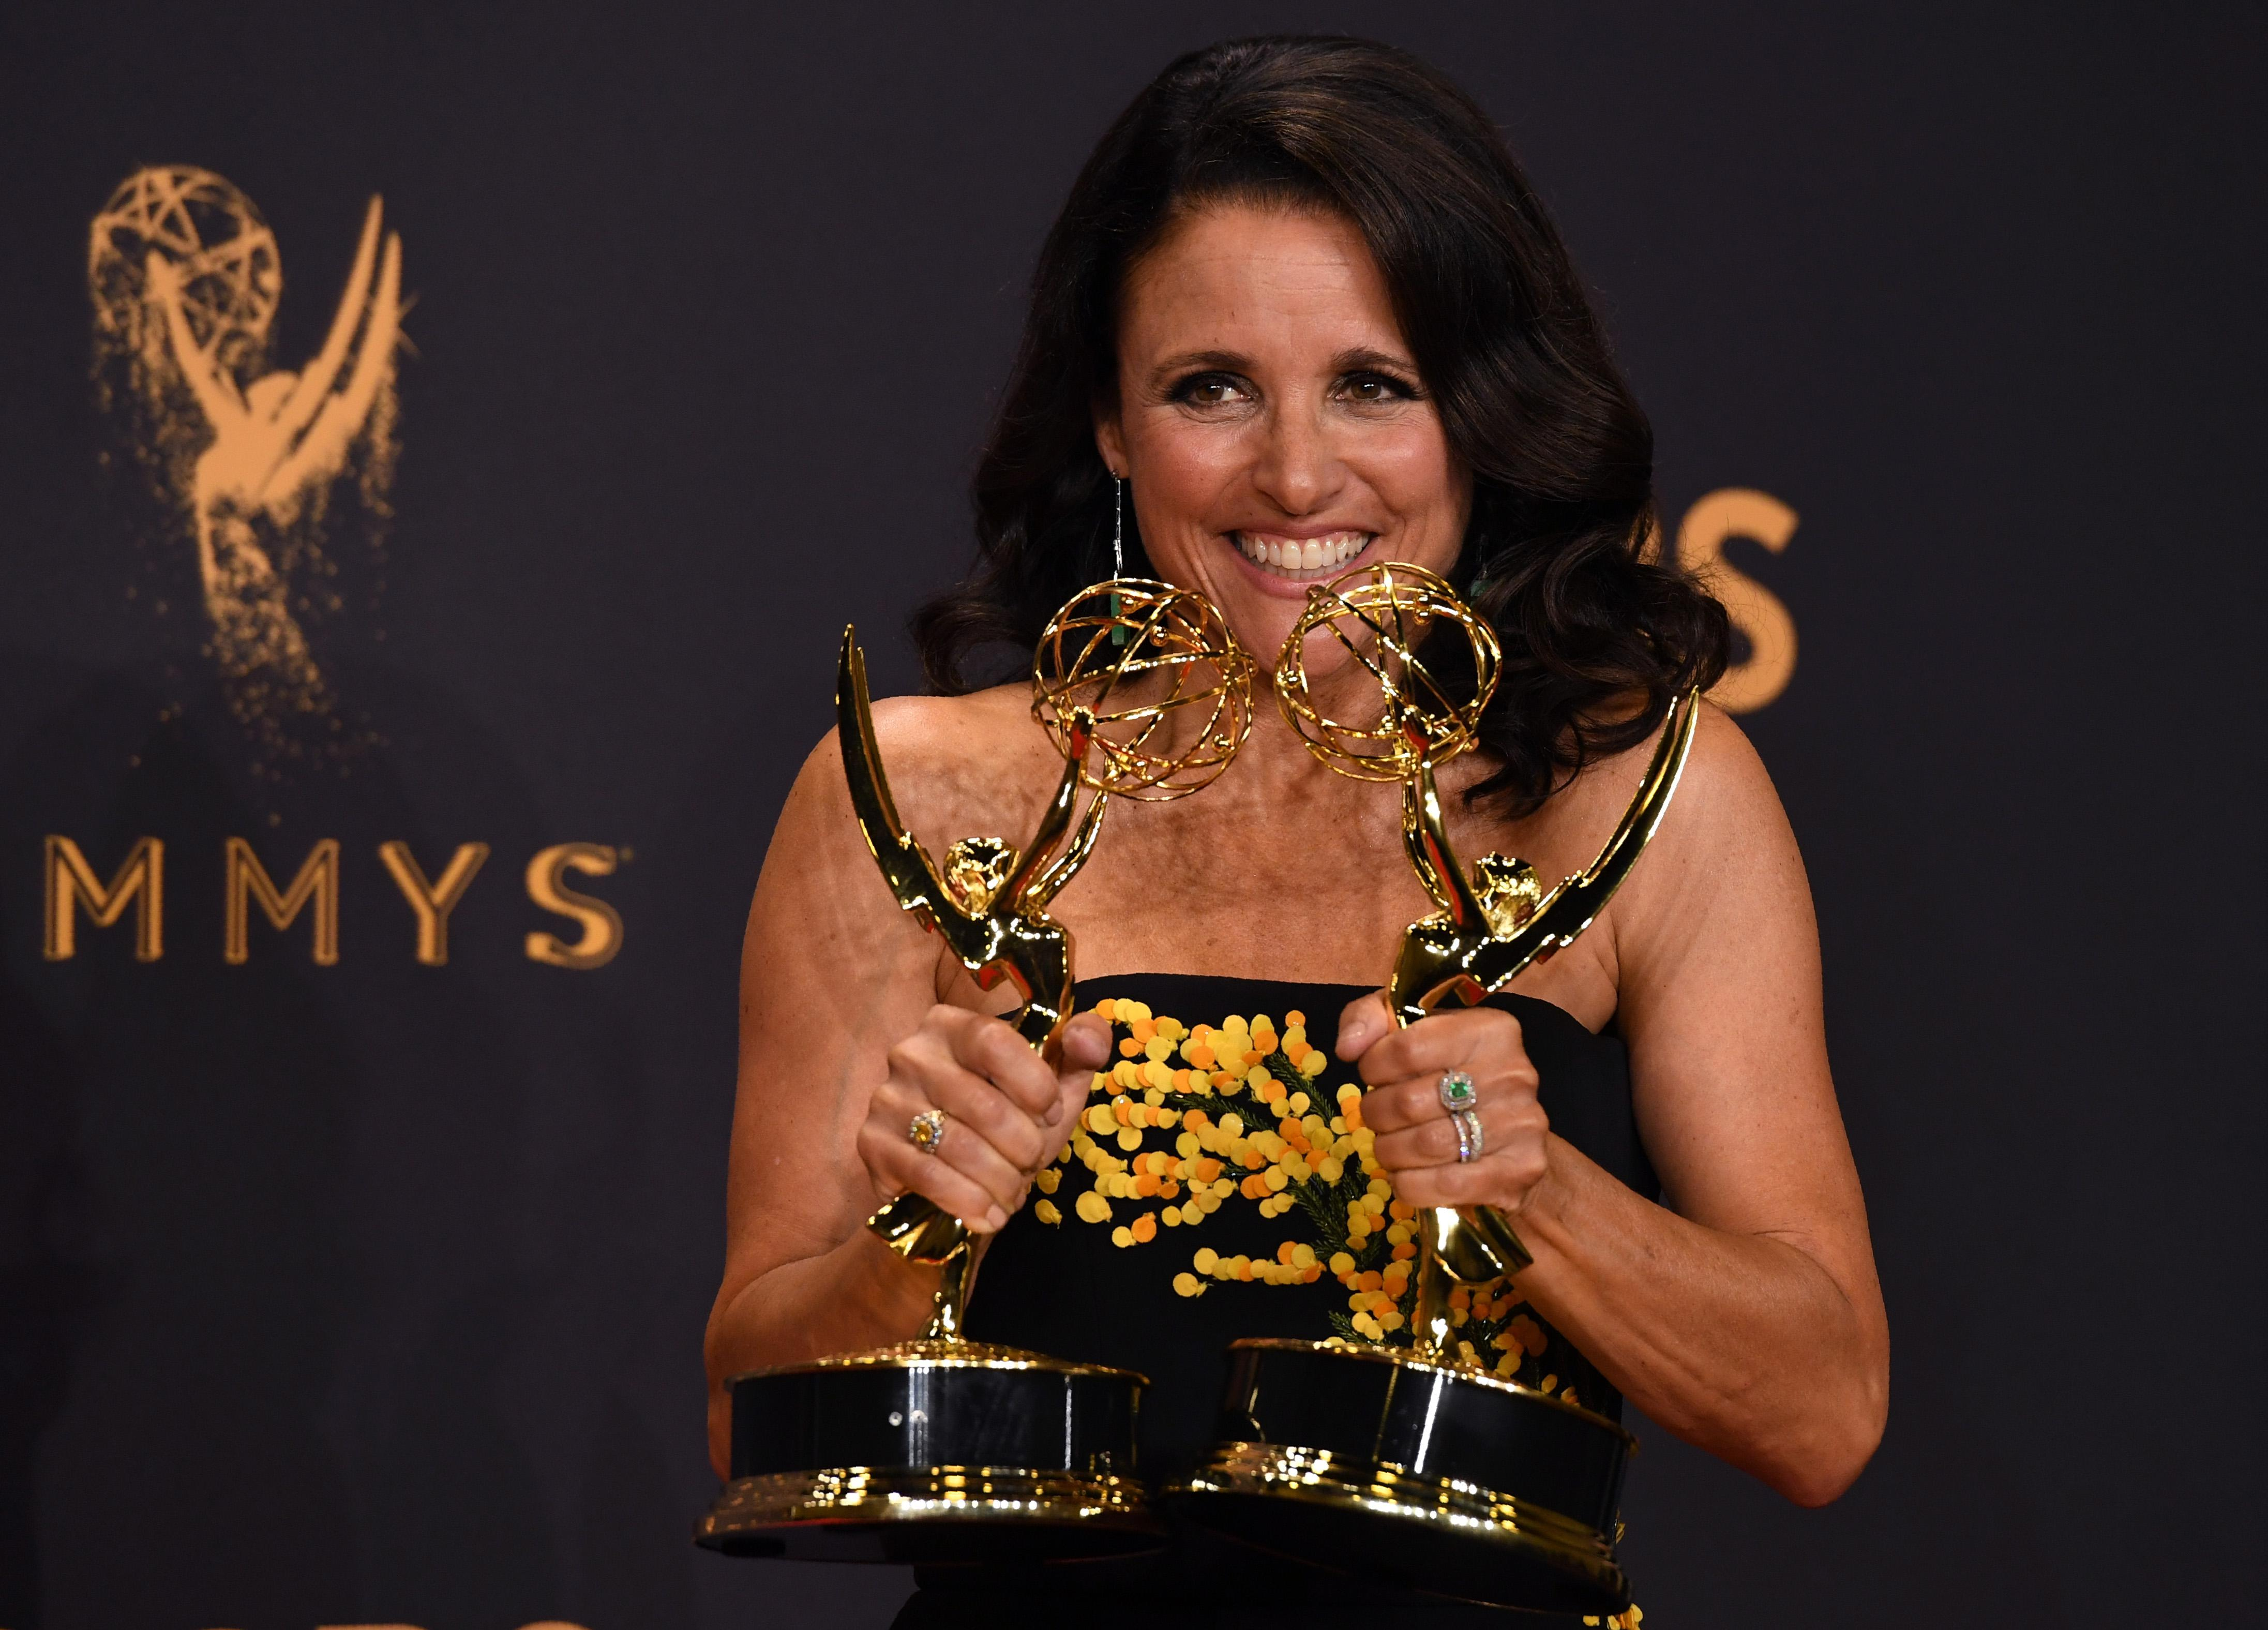 Julia Louis-Dreyfus poses with the Emmy for Outstanding Lead Actress in a Comedy Series for 'Veep' during the 69th Emmy Awards at the Microsoft Theatre on September 17, 2017 in Los Angeles, California.